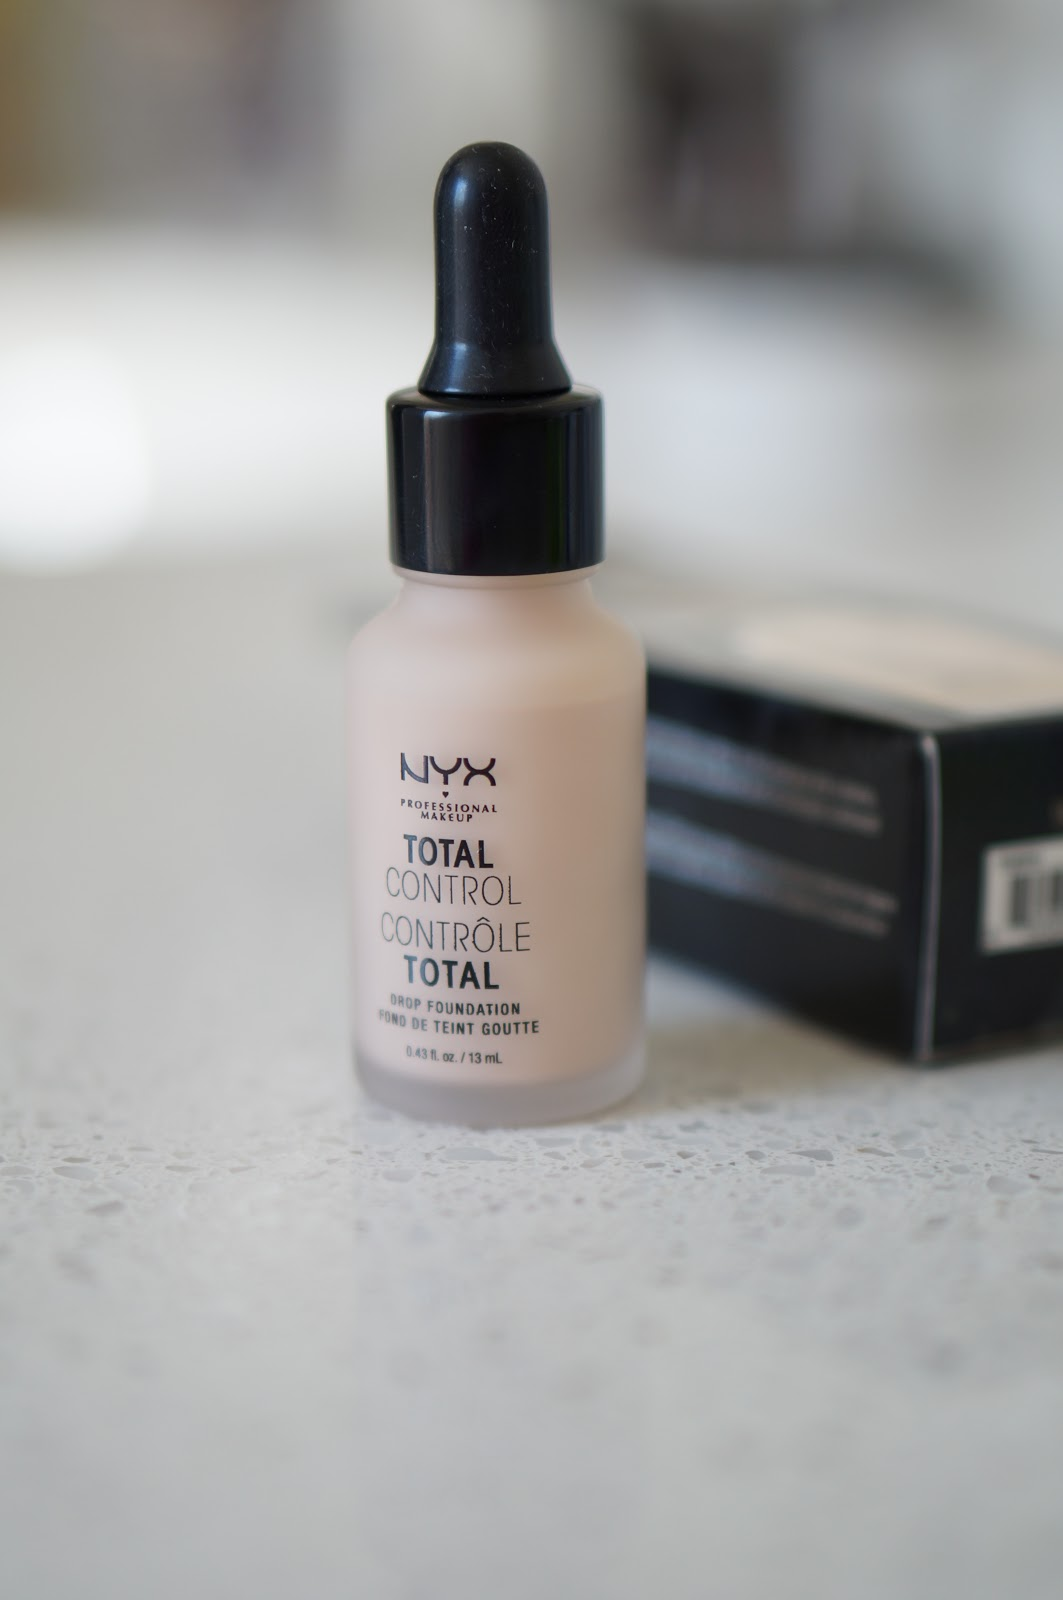 Popular North Carolina style blogger Rebecca Lately tries out the NYX Total Control Drop Foundation. Click here to read her Foundation Friday post!